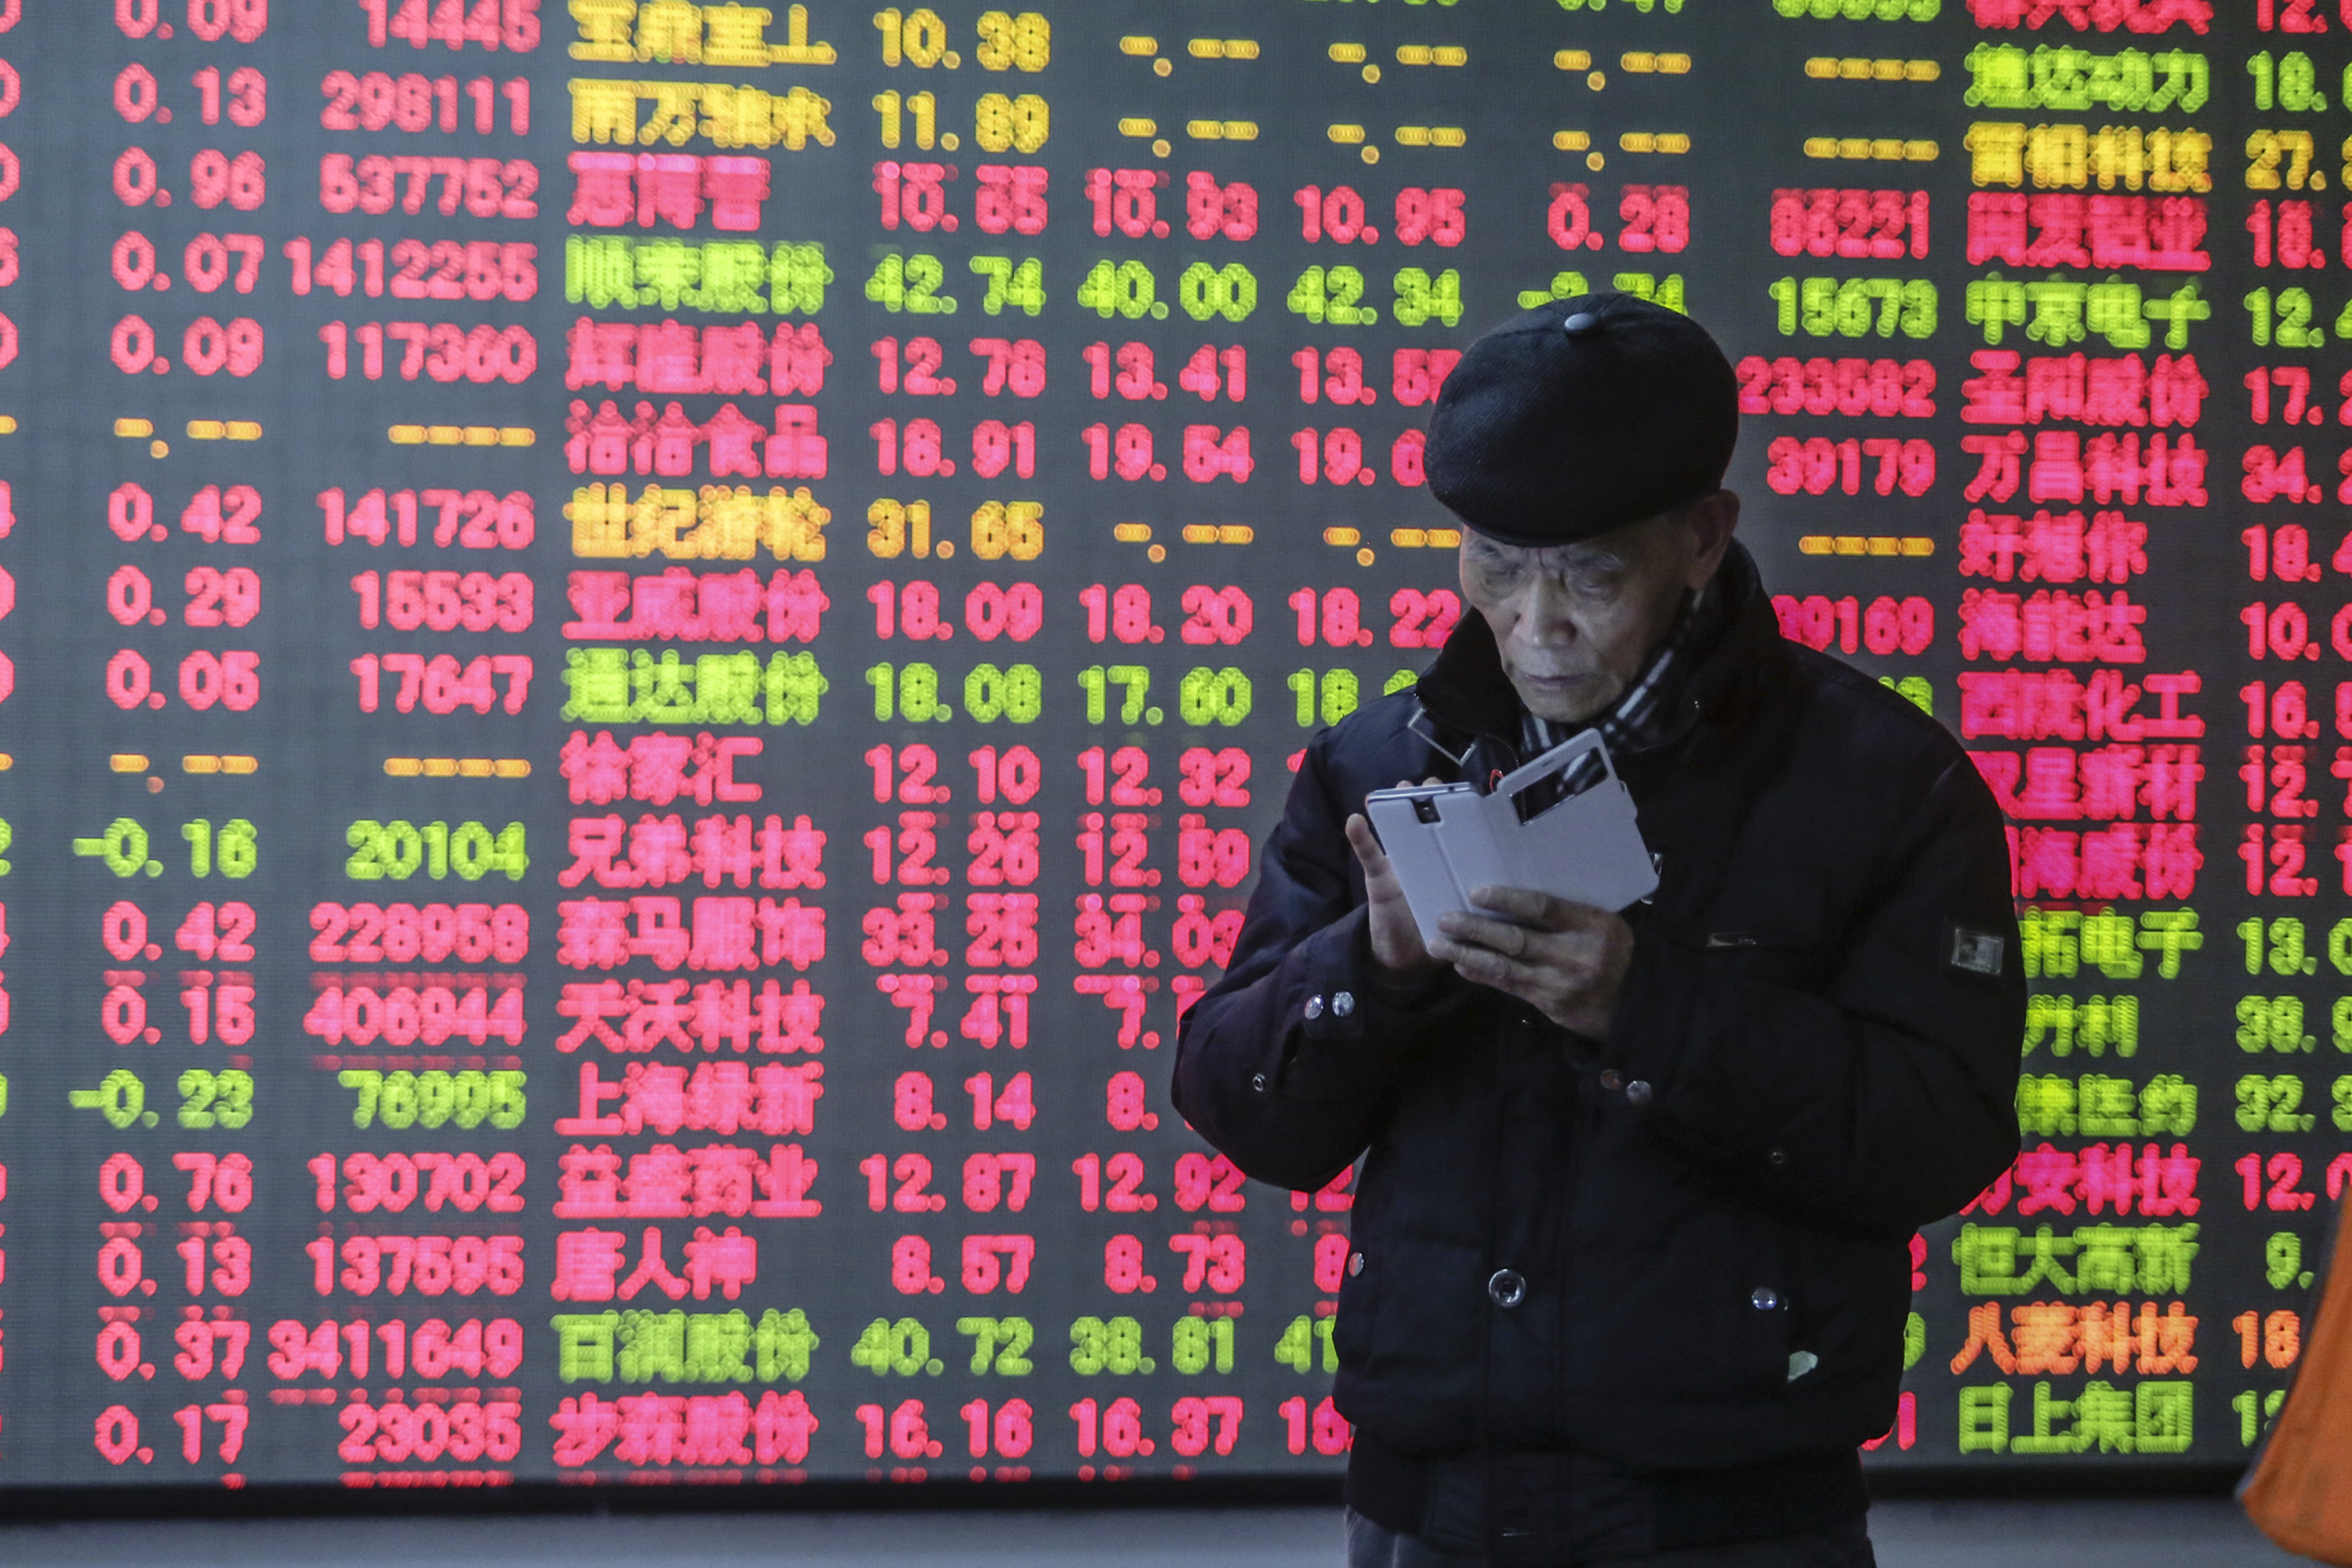 China's Stock Runs High In A New Year